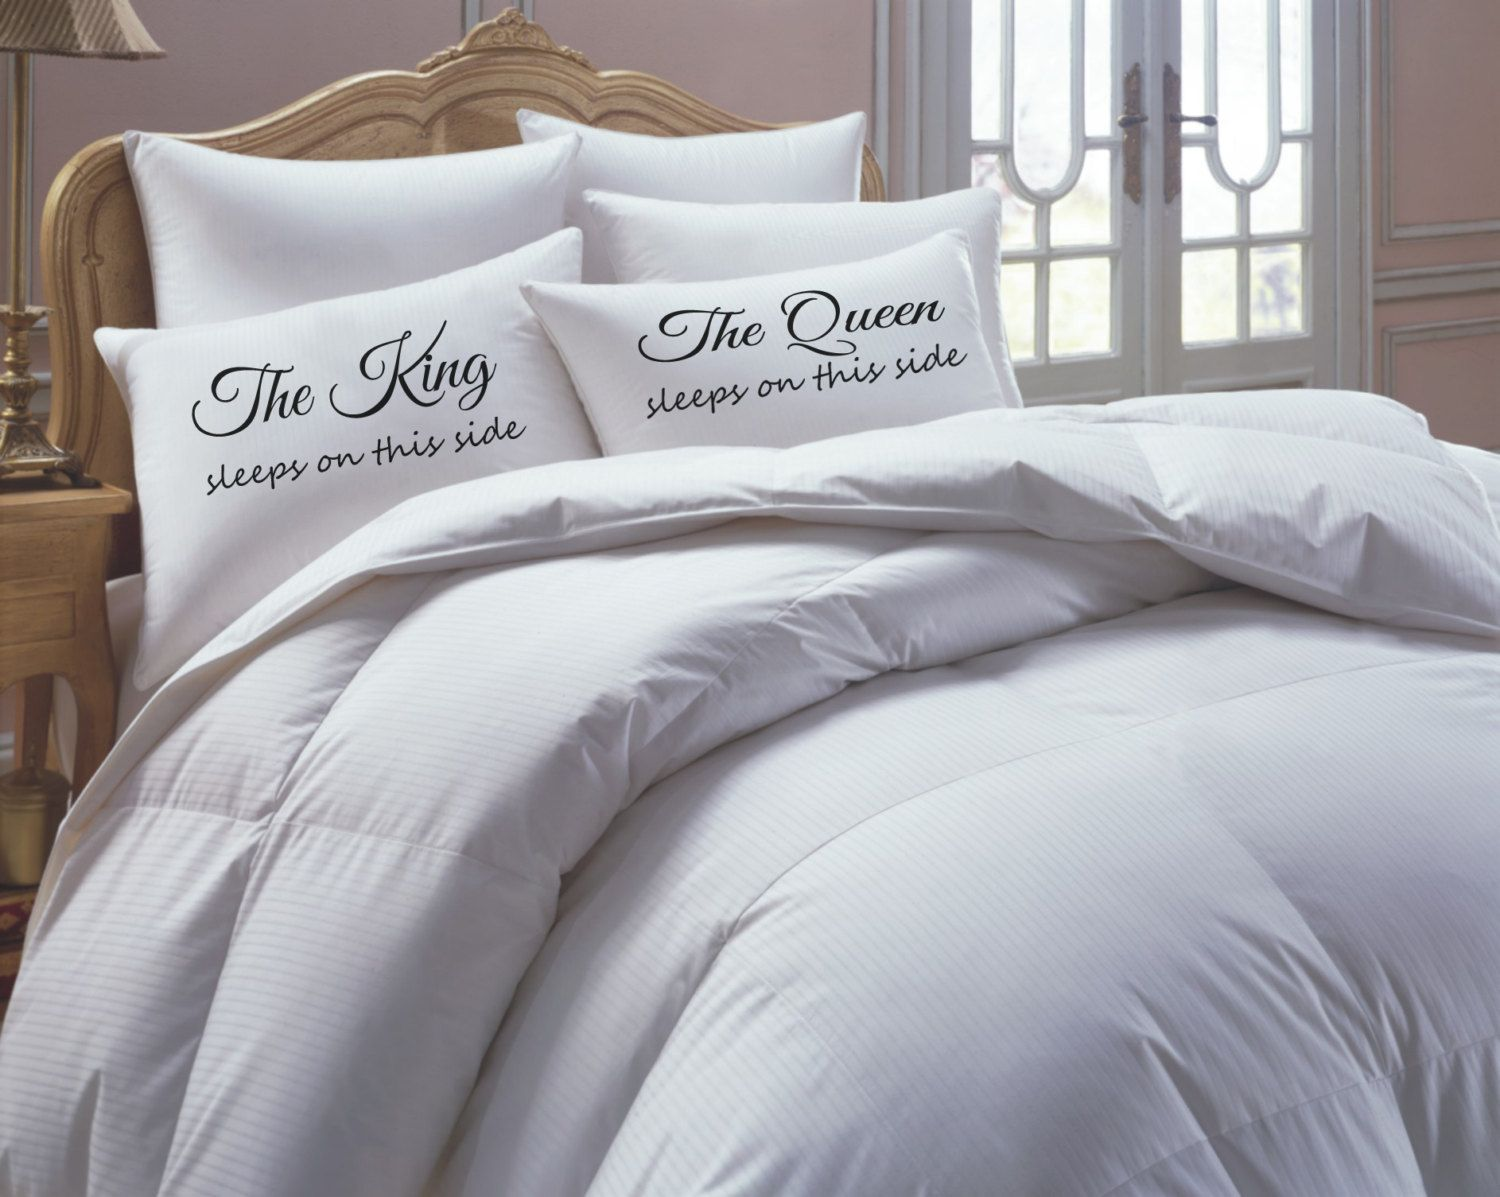 King and Queen Pillowcase Set his hers pillowcase by